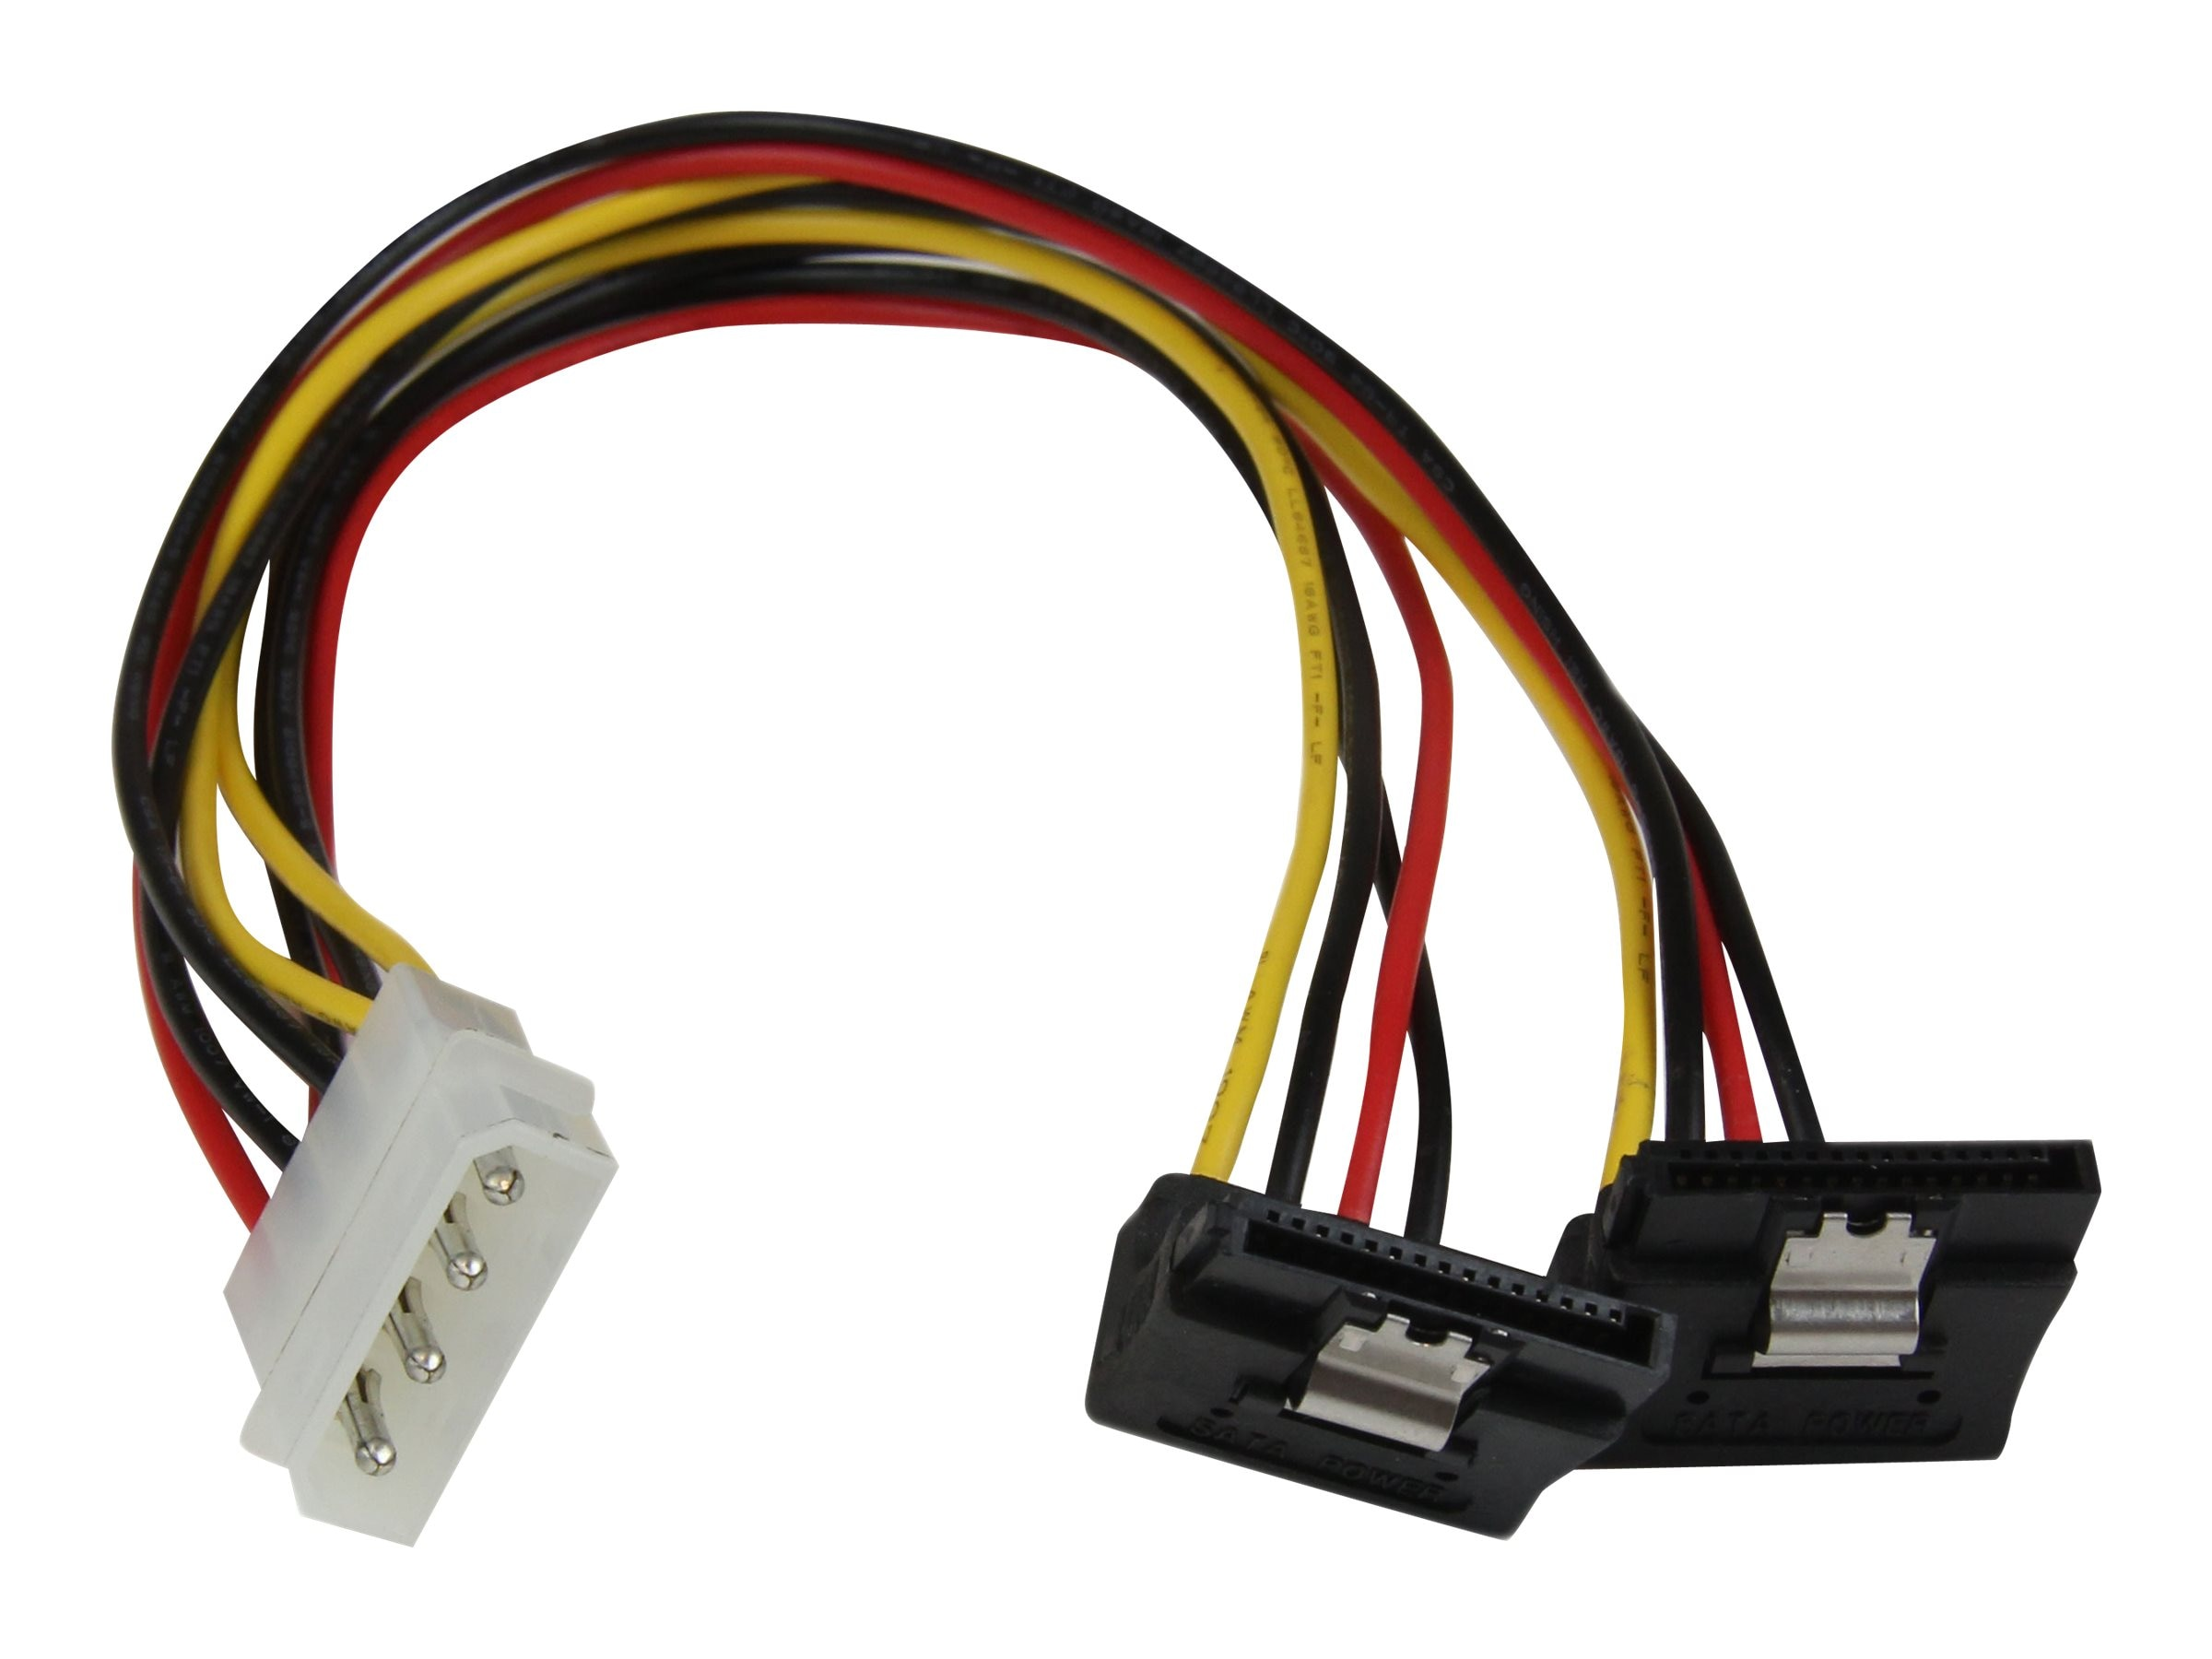 StarTech.com LP4 to 2x Right Angle Latching SATA Power Y Cable Splitter, 4 Pin Molex to Dual SATA, 12in, PYO2LP4LSATR